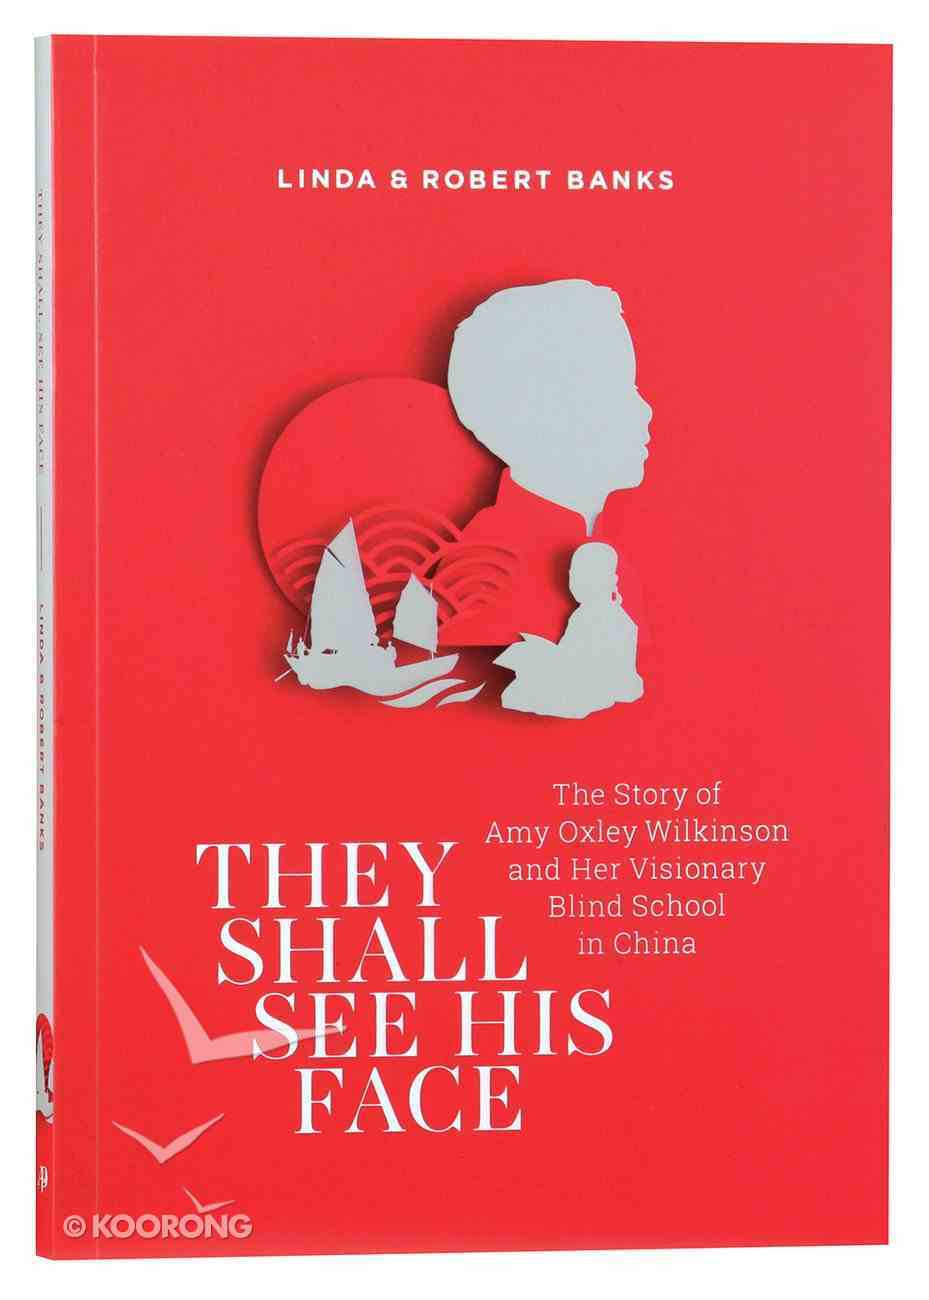 They Shall See His Face: The Story of Amy Oxley Wilkinson and Her Visionary Blind School in China Paperback